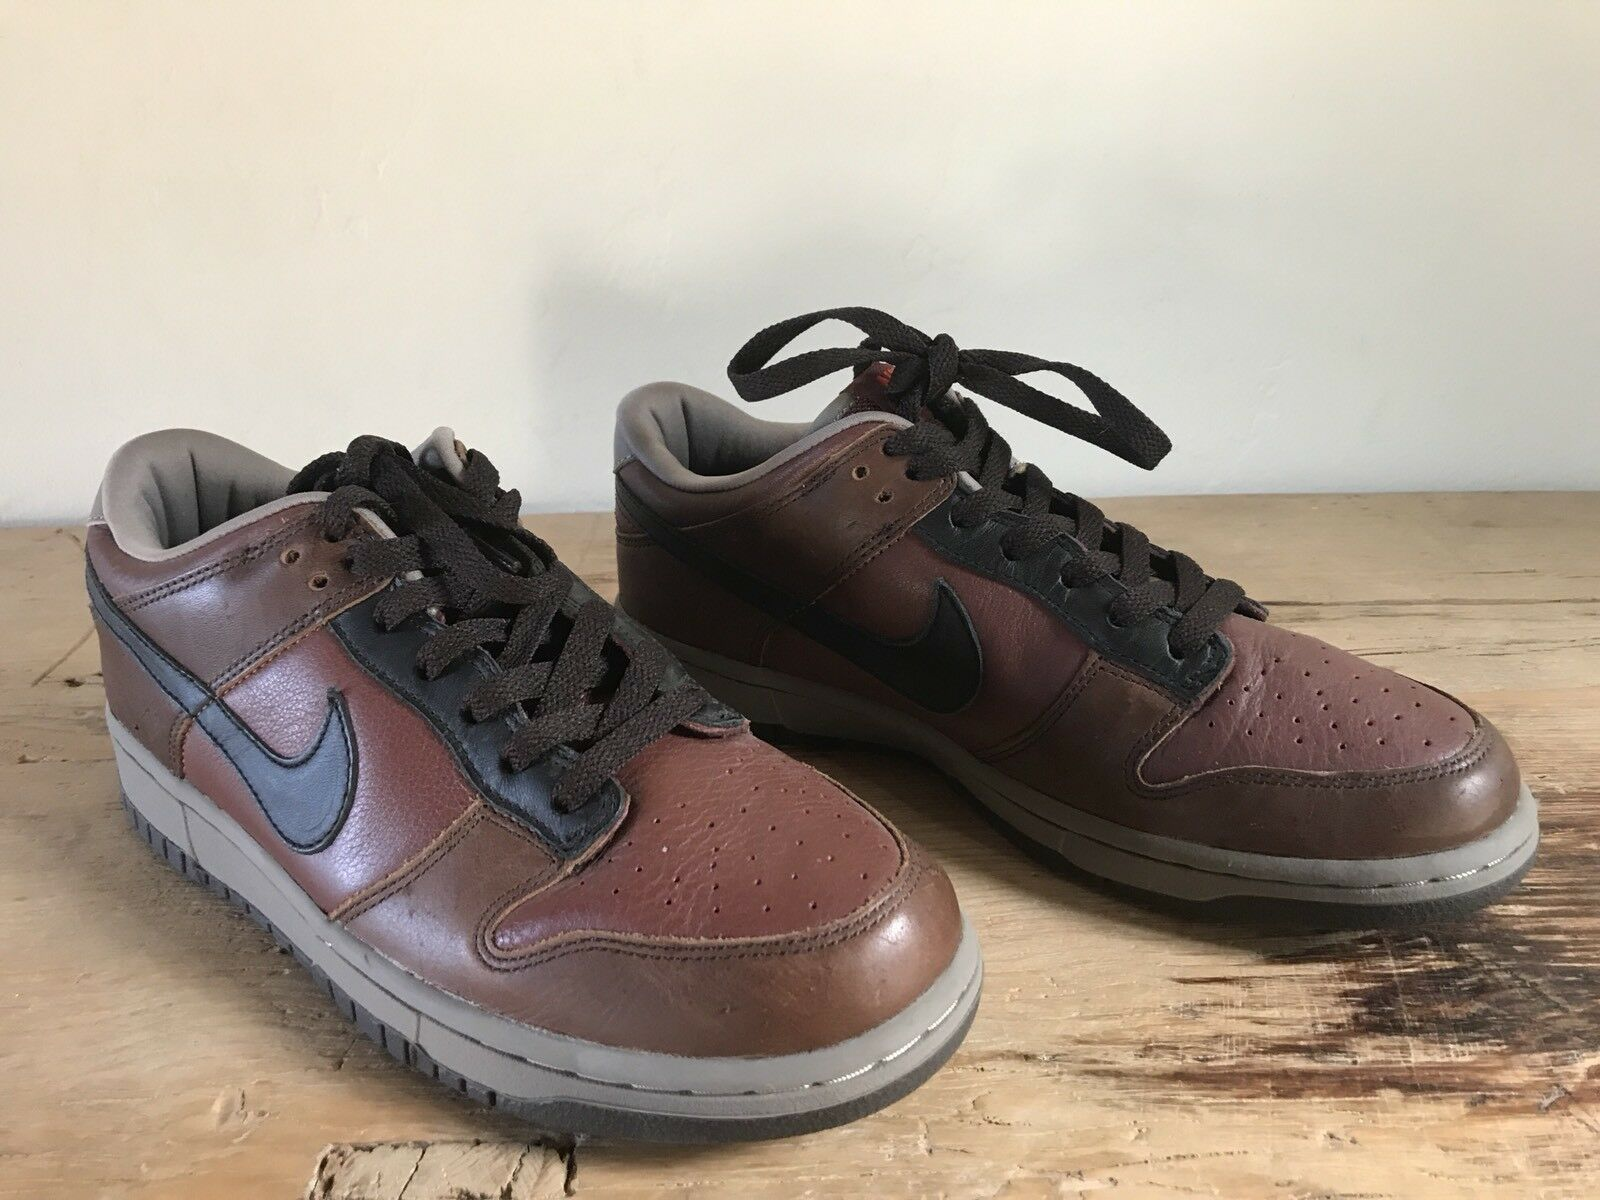 NEW Nike Men's Brown & Black Leather Low Top Sneakers Size 9